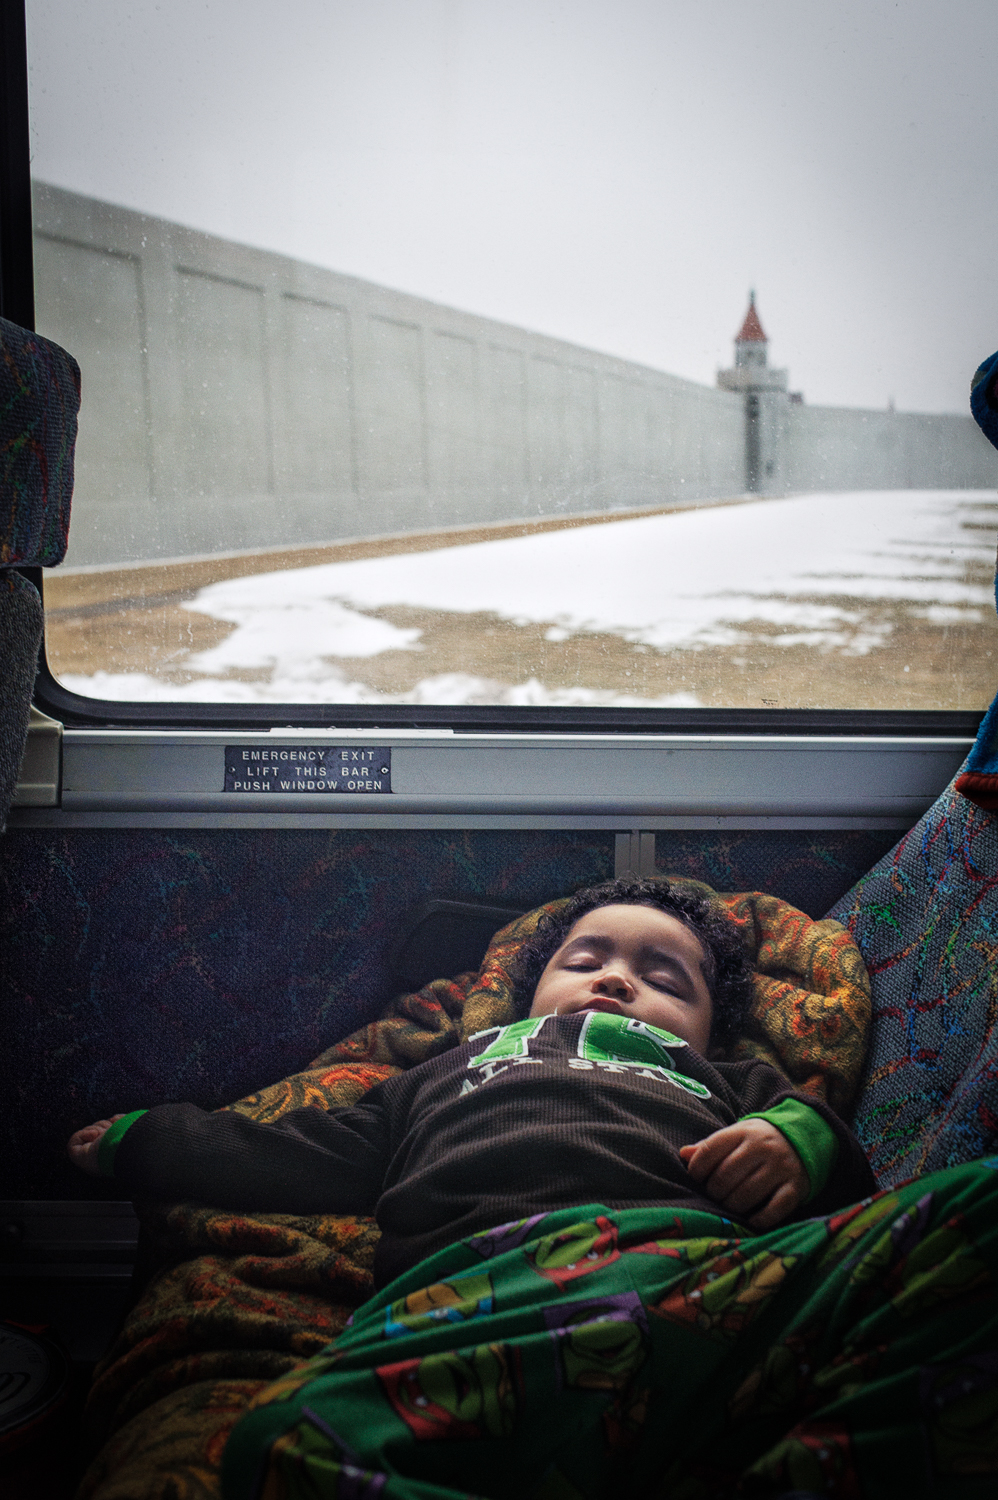 Jeremiah, 2, asleep as the bus is passing Attica prison in the early morning hours. Jeremiah is on his way to see his mother at Albion Correctional Facility. Albion is the largest women's prison in NY state, 20 miles from the Canadian Border. Jeremiah lives in the Bronx with his grandmother. March 8, 2014.